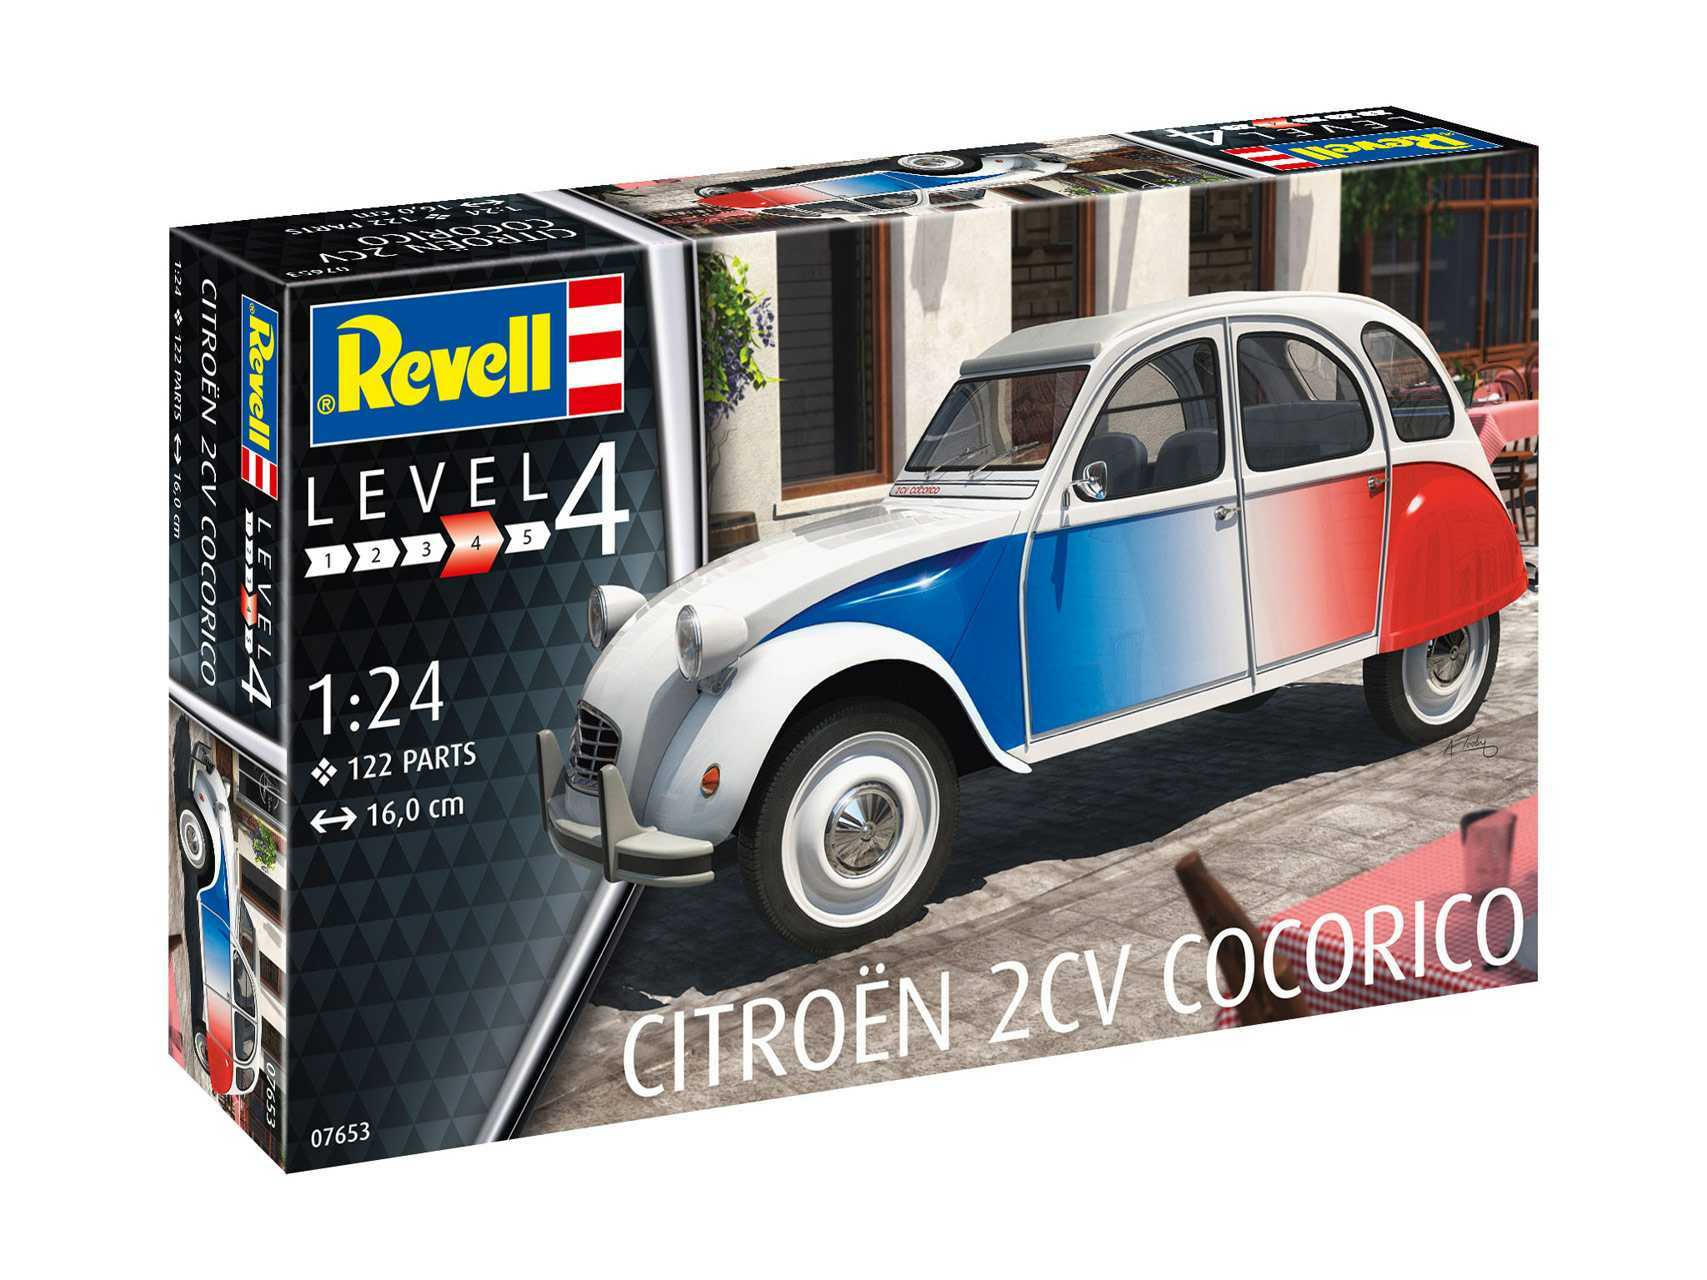 1:24 Citroën 2CV Cocorico (Model Set)